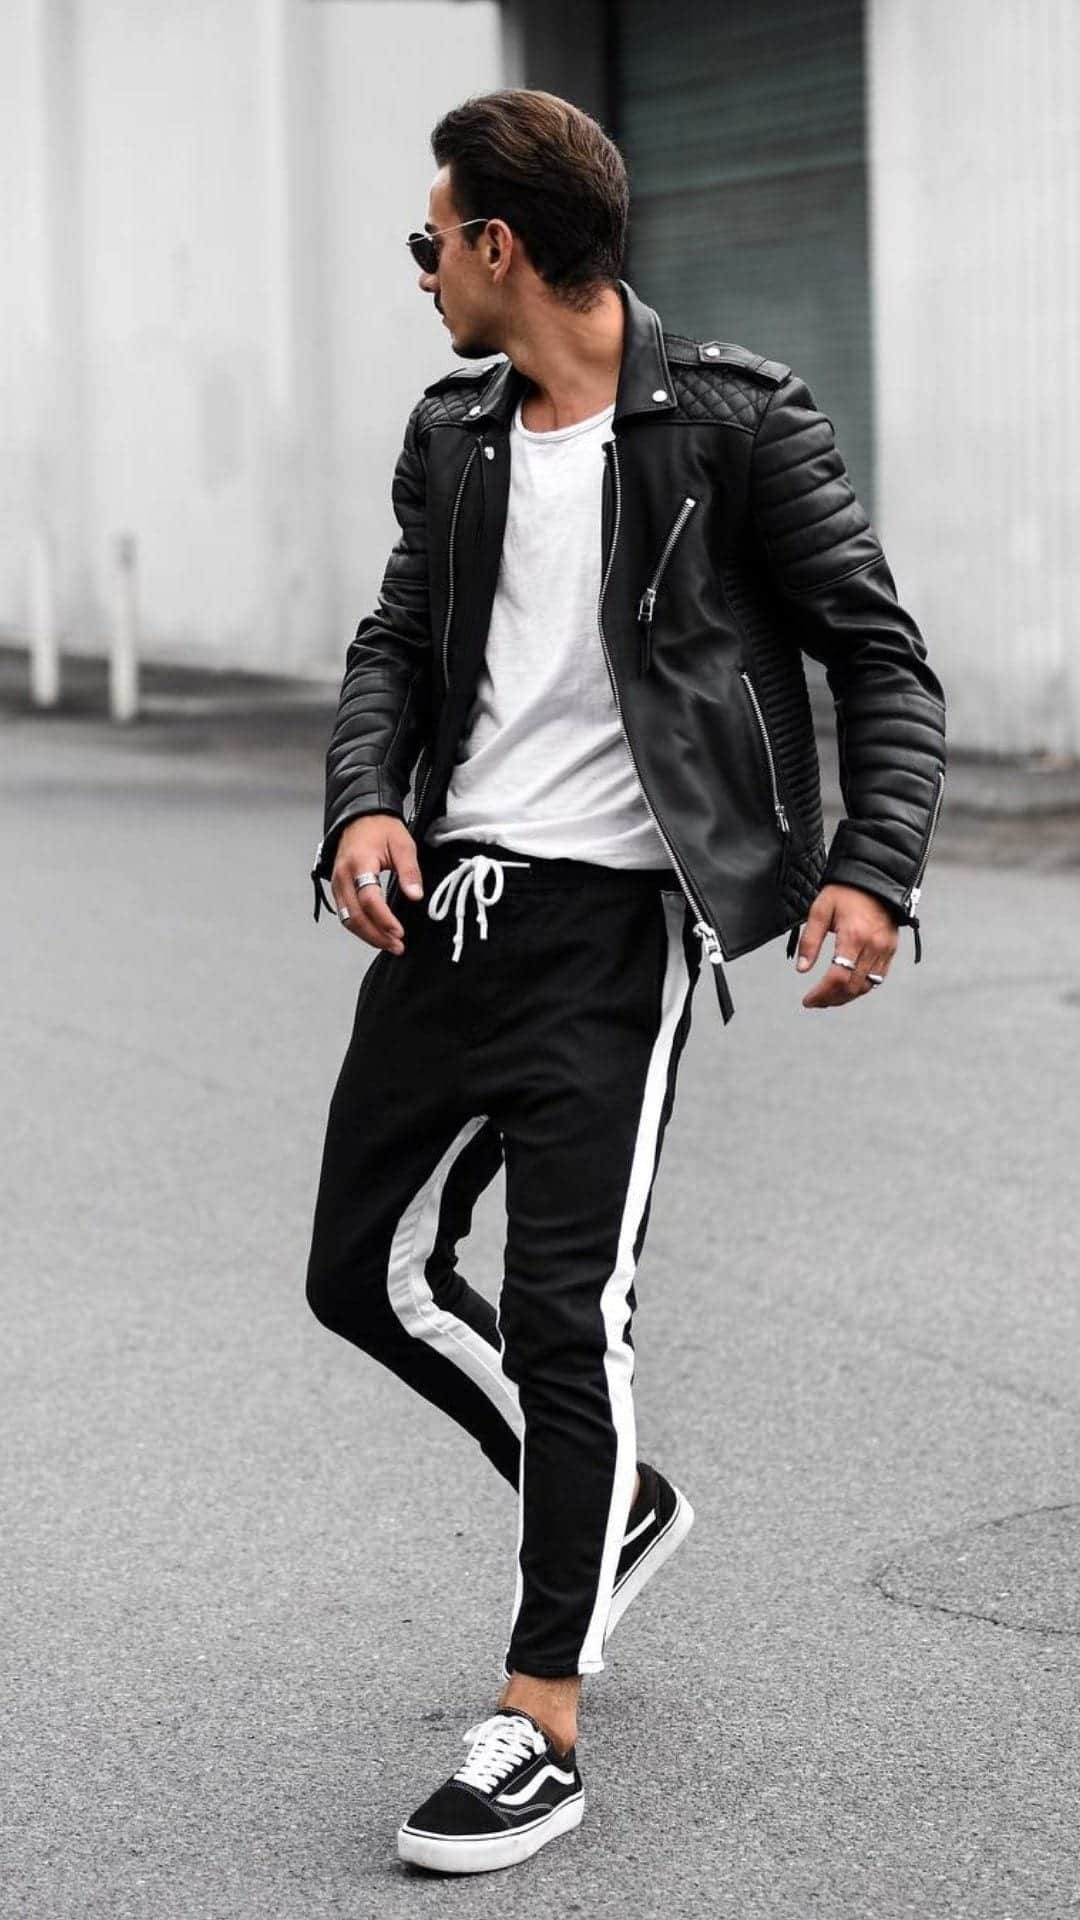 139c9acb9a2e Casual outfits for young guys 6-1 Cute Outfits for Skinny Guys - Styling  Tips with New Trends and What